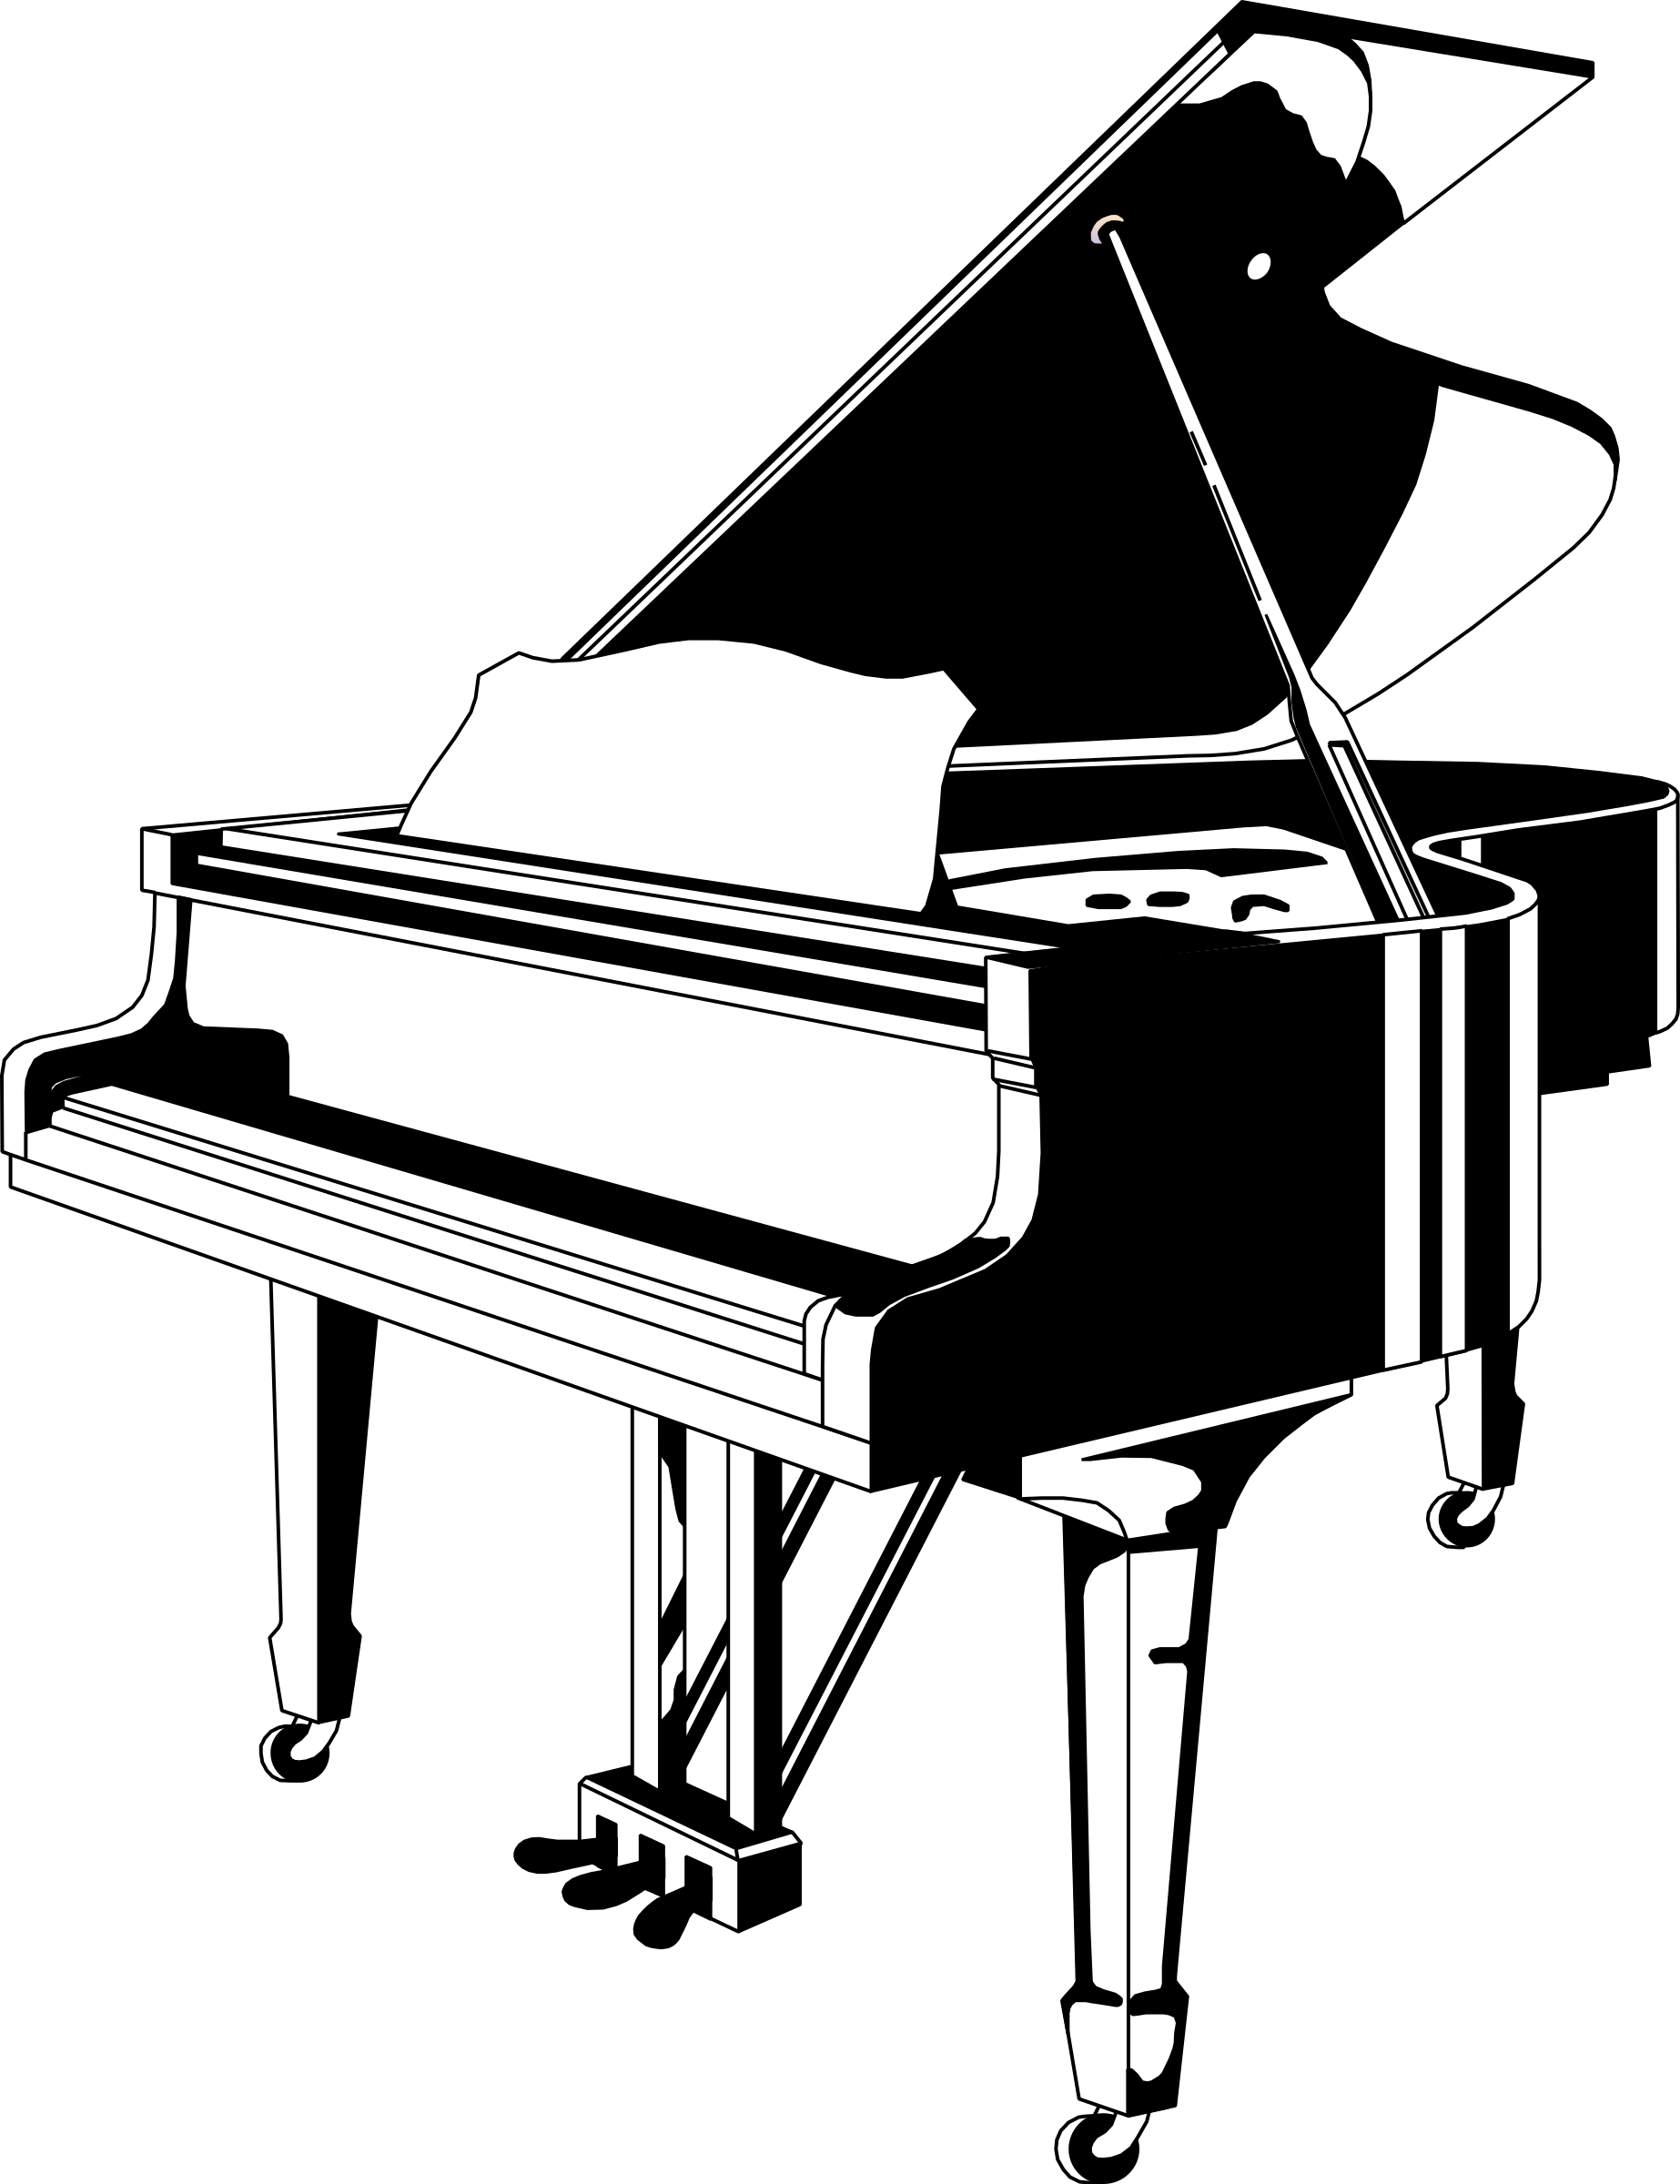 Piano clipart png. Black white big image